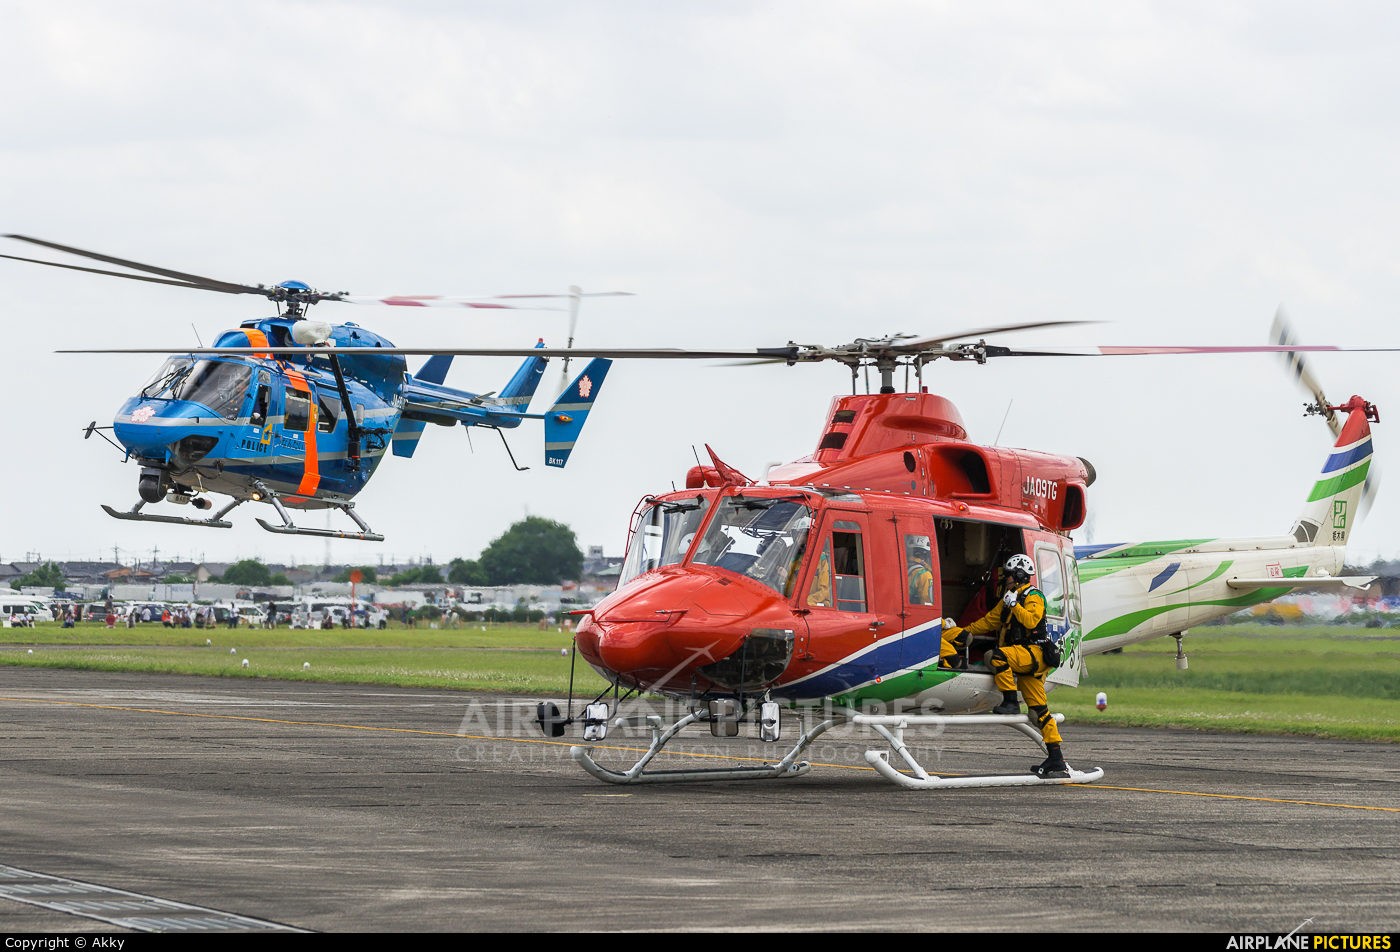 Japan - Fire and Disaster Management Agency JA09TG aircraft at Off Airport - Japan